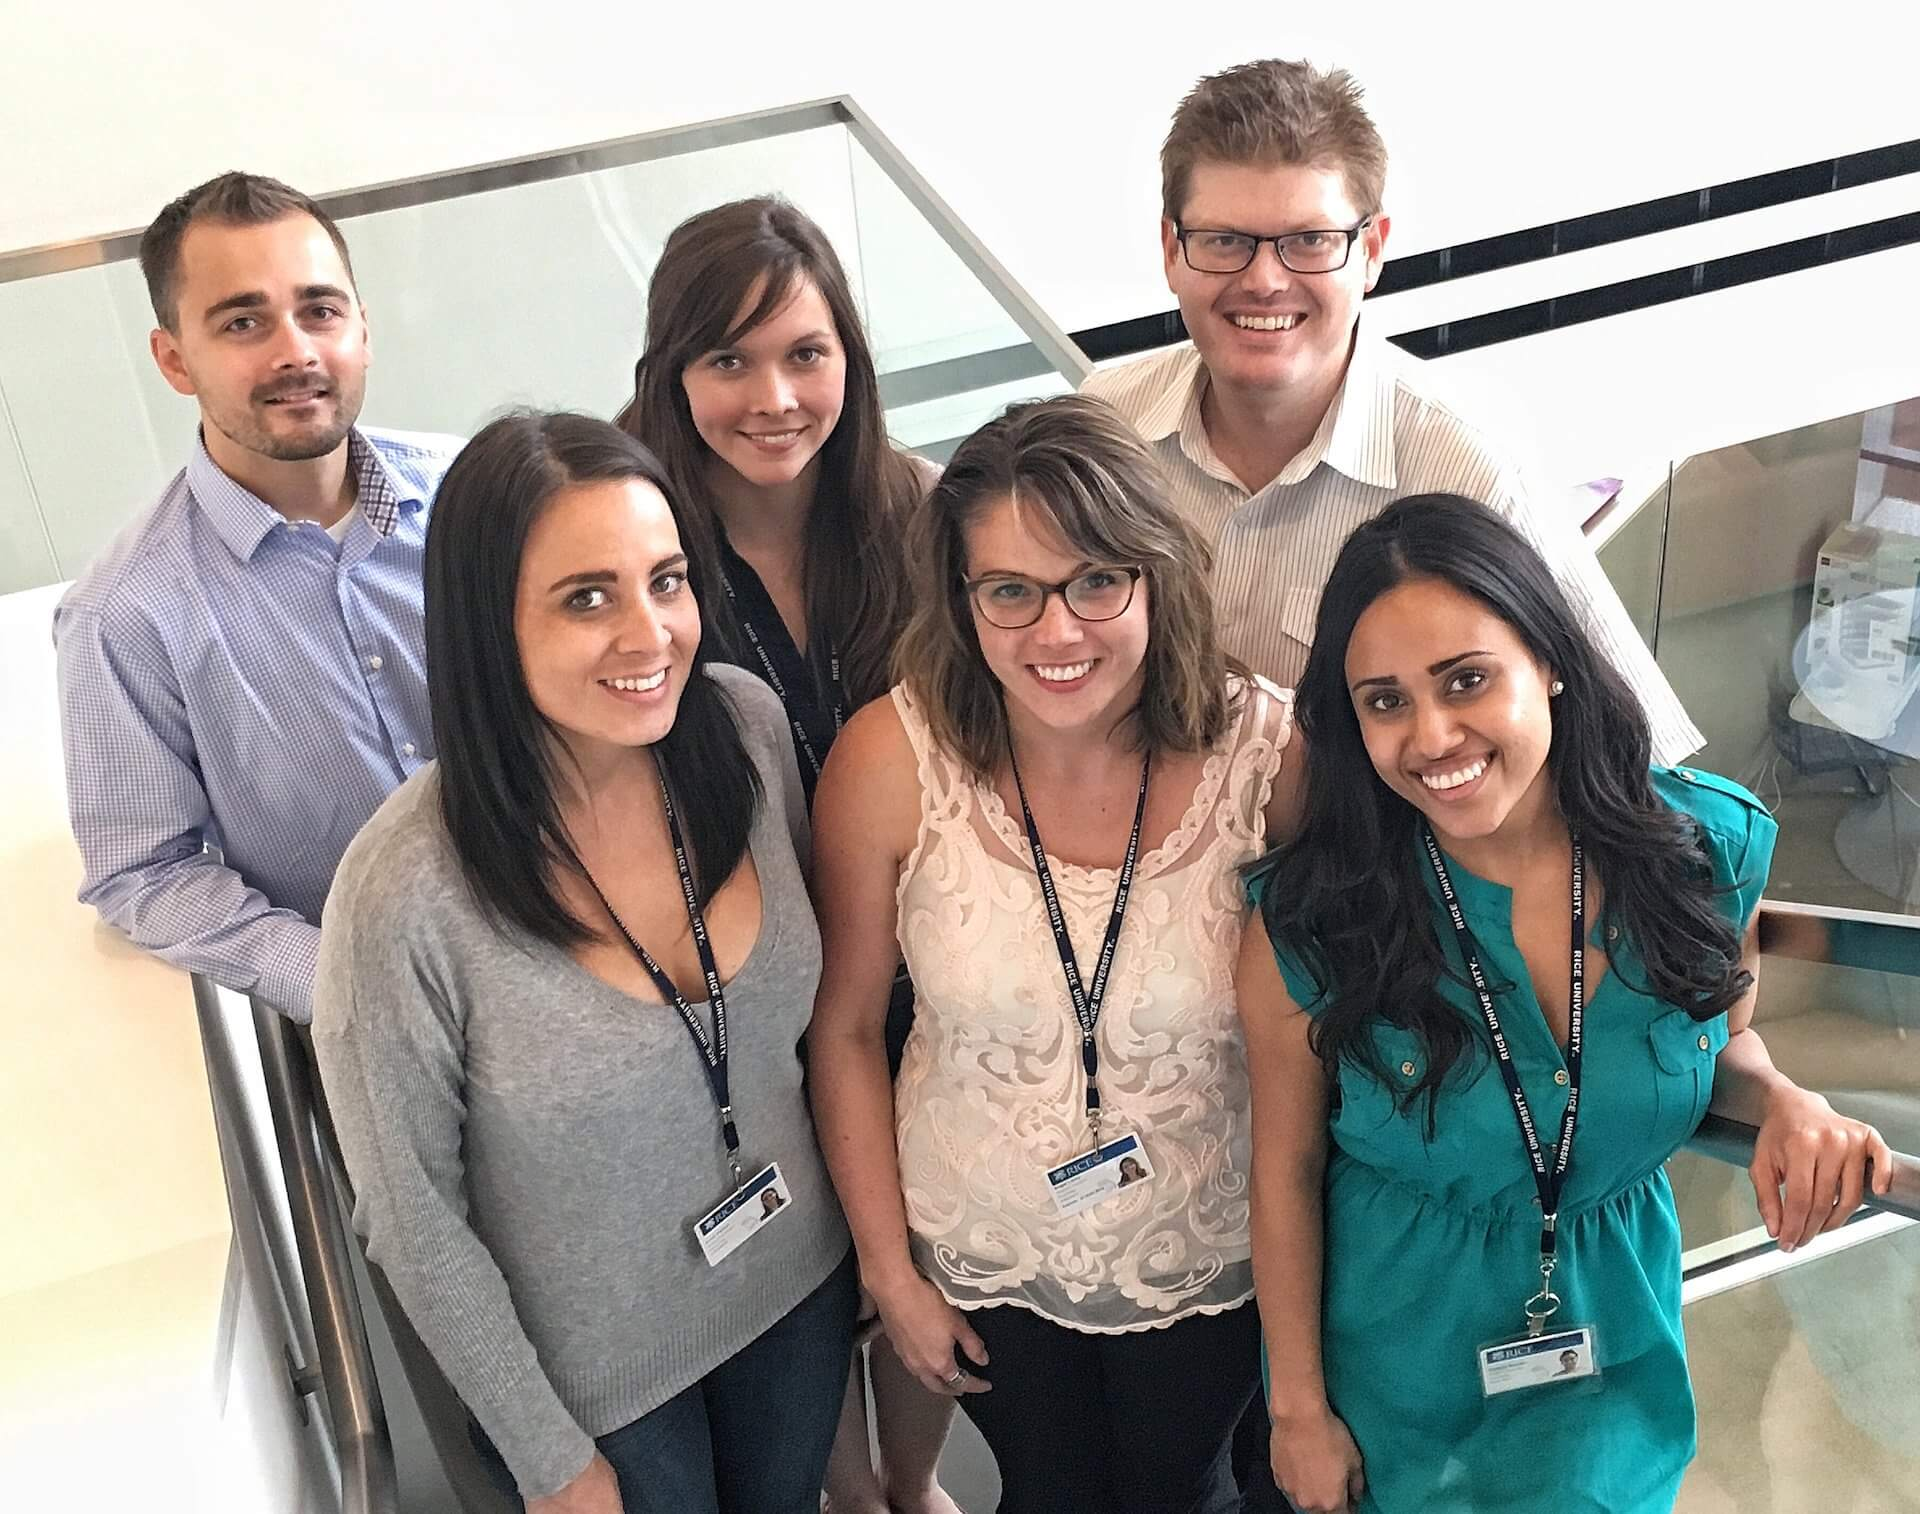 Rice University researchers have received a National Institutes of Health grant to identify connections between the loss of a significant other and increased risk of cardiovascular disease. Lab members, from left: back, Kyle Murdock, Larissa Gonzalez and Christopher Fagundes; front, Kristi Parker, Angie LeRoy and Patricia Morales. (Photo by Jeff Fitlow)